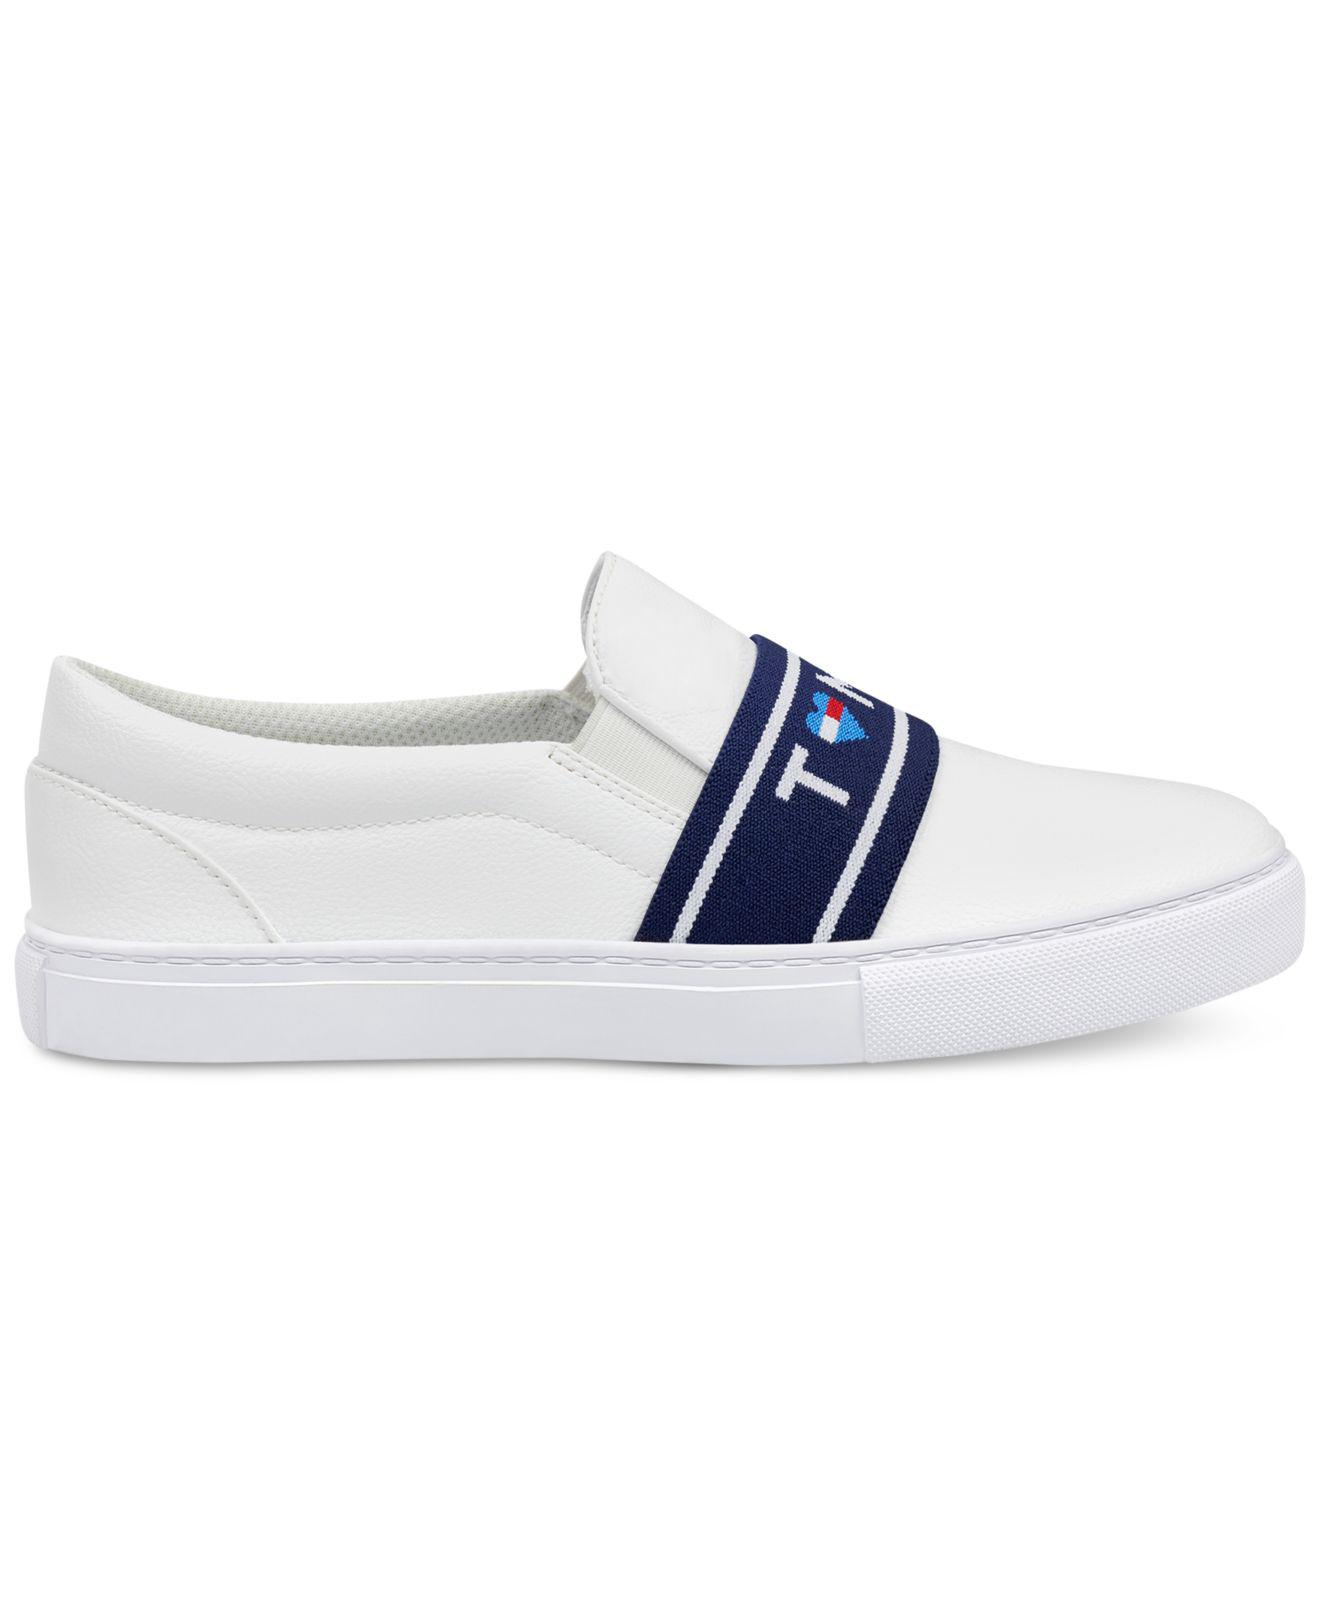 d24f76ff Tommy Hilfiger Lourena Slip-on Fashion Sneakers in White - Lyst